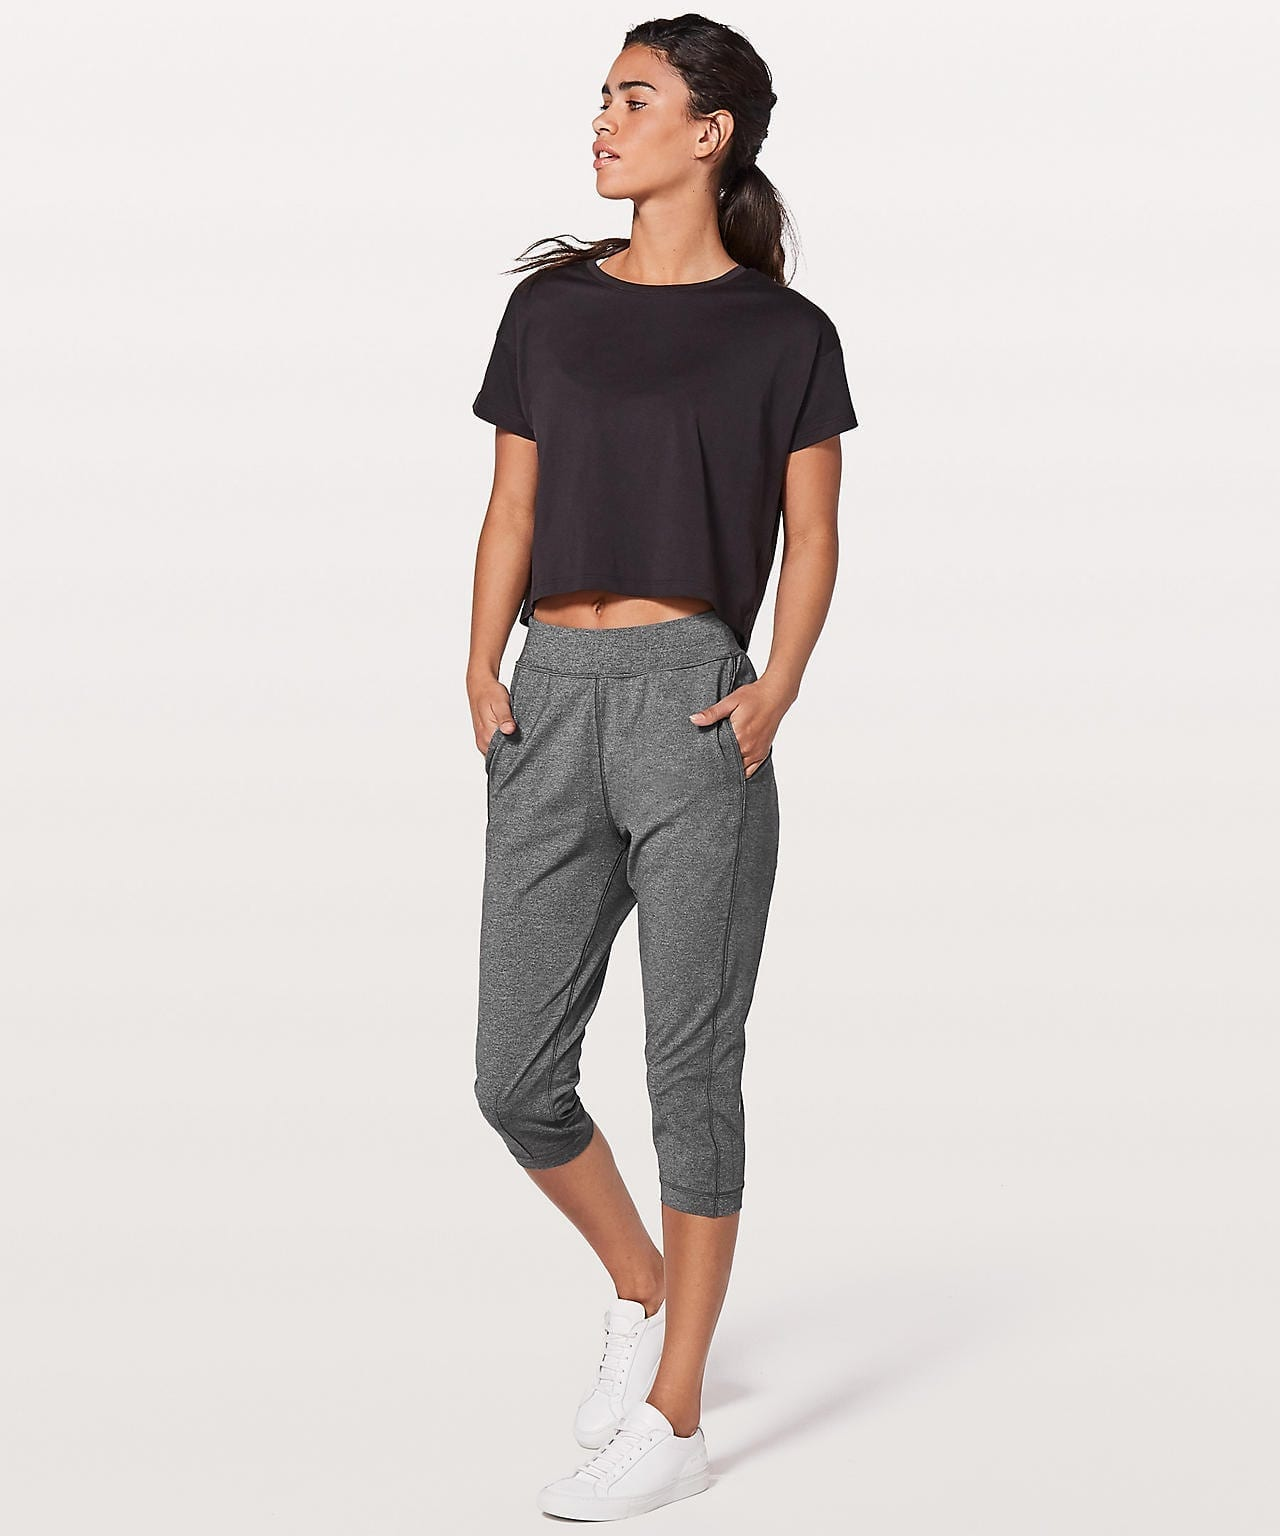 Lululemon Rejuvenate Crop